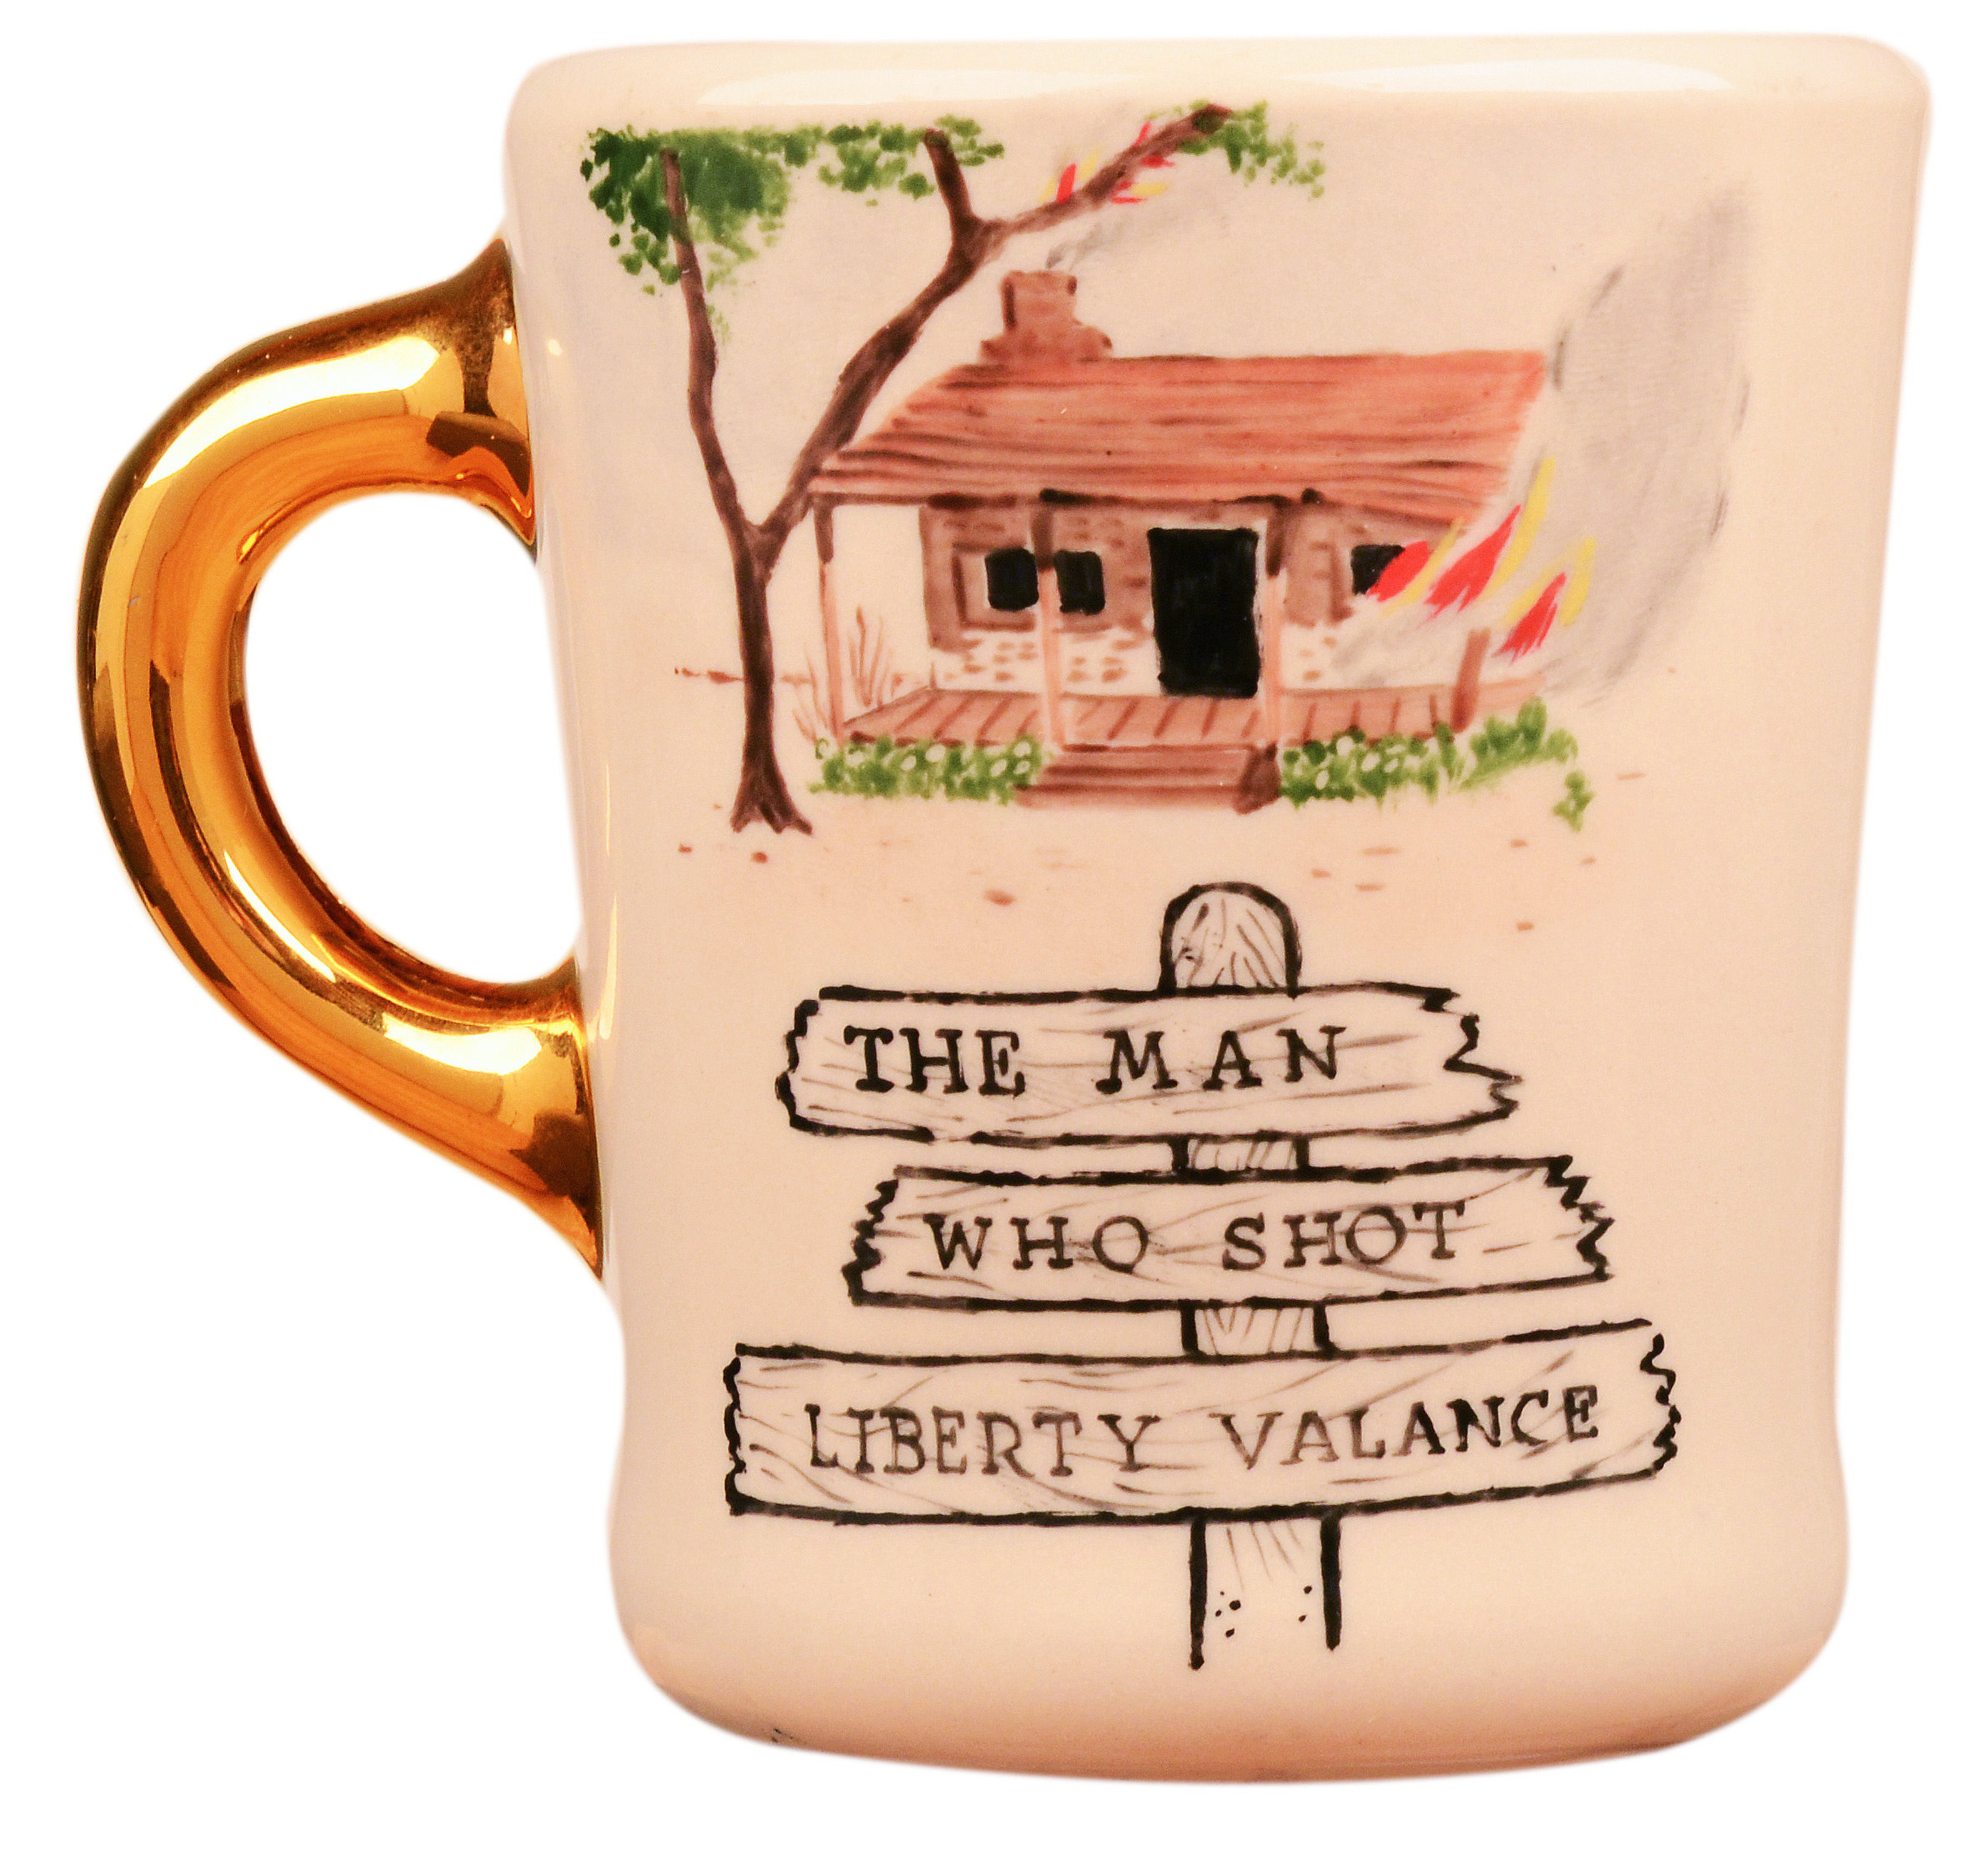 John Wayne mug for the 1962 movie The Man Who Shot Liberty Valance, front.